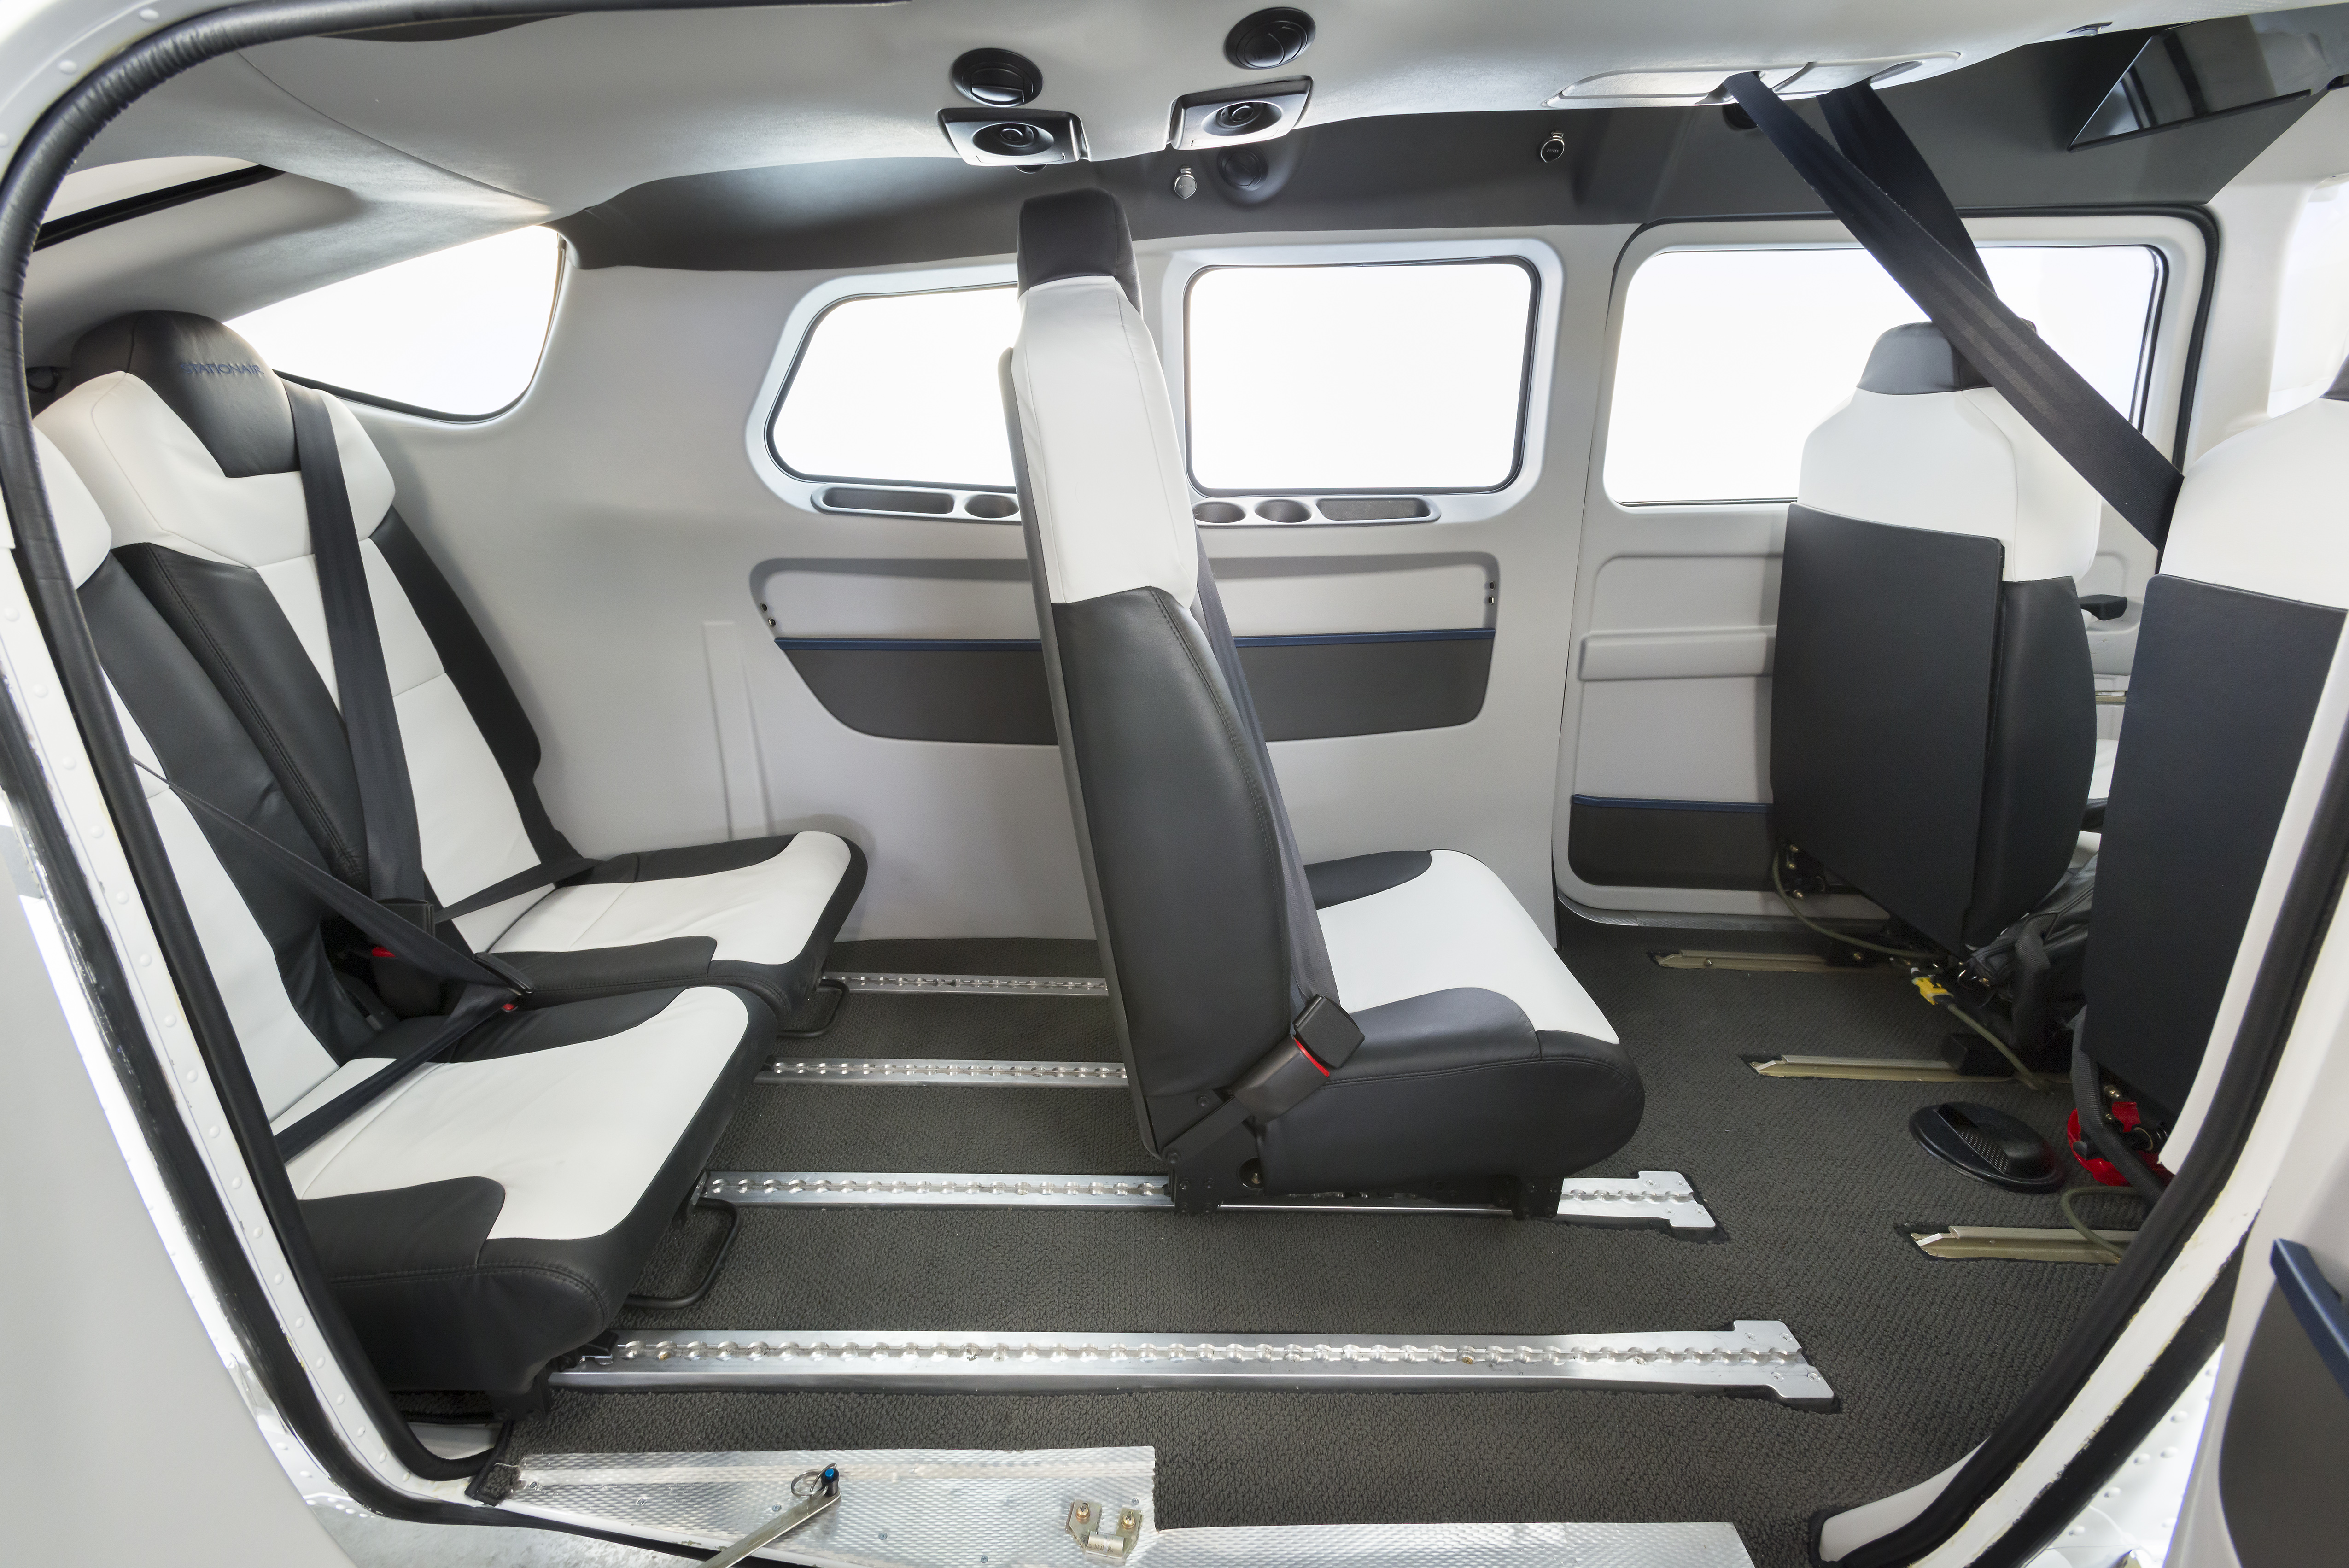 Textron cessna stationair to sport new interior seating for New interior